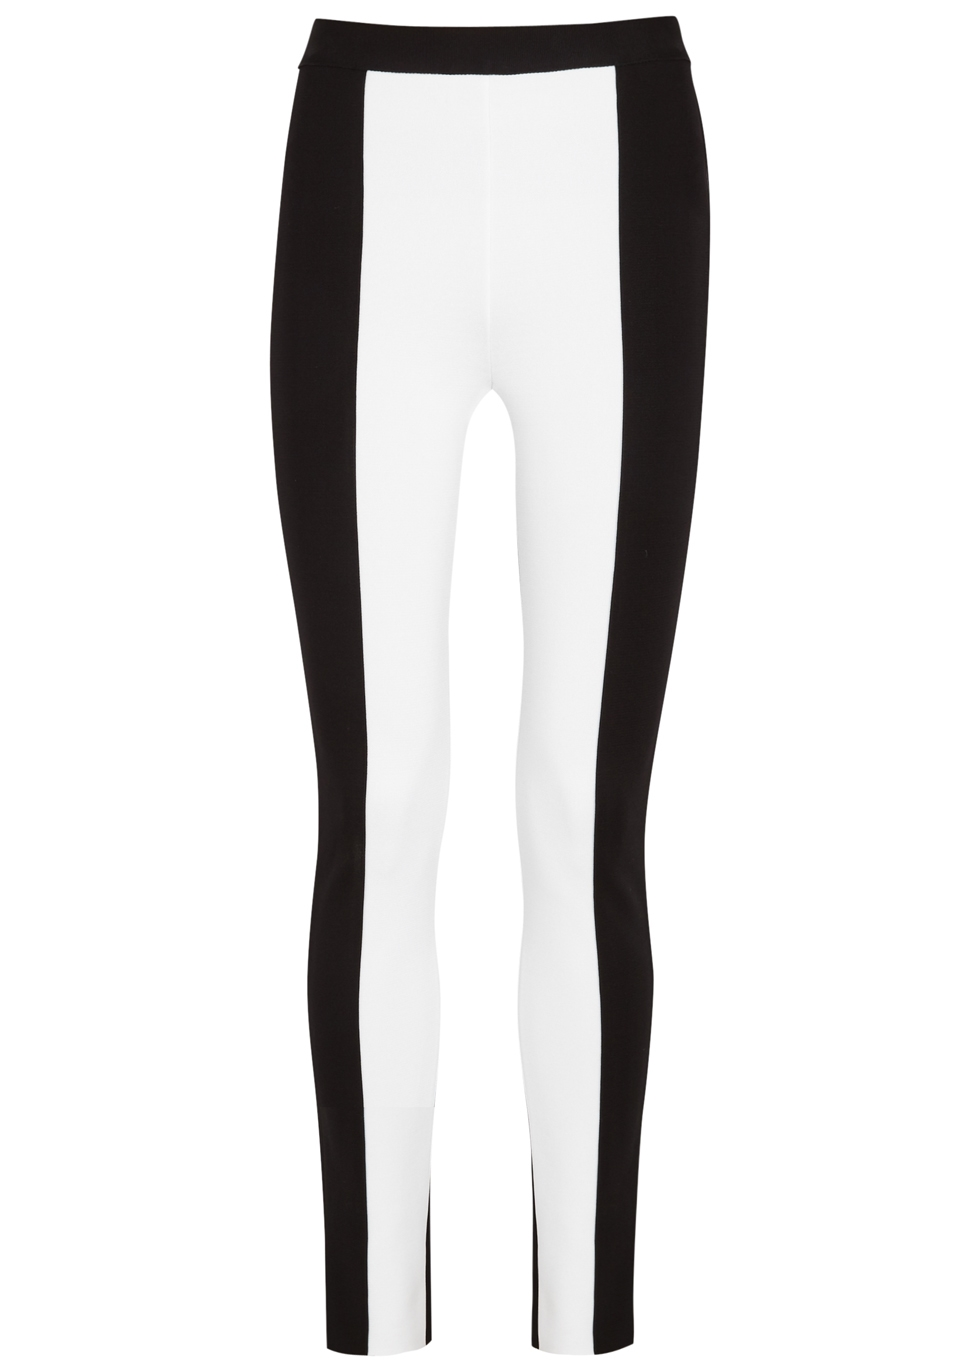 MONOCHROME STRETCH-KNIT LEGGINGS